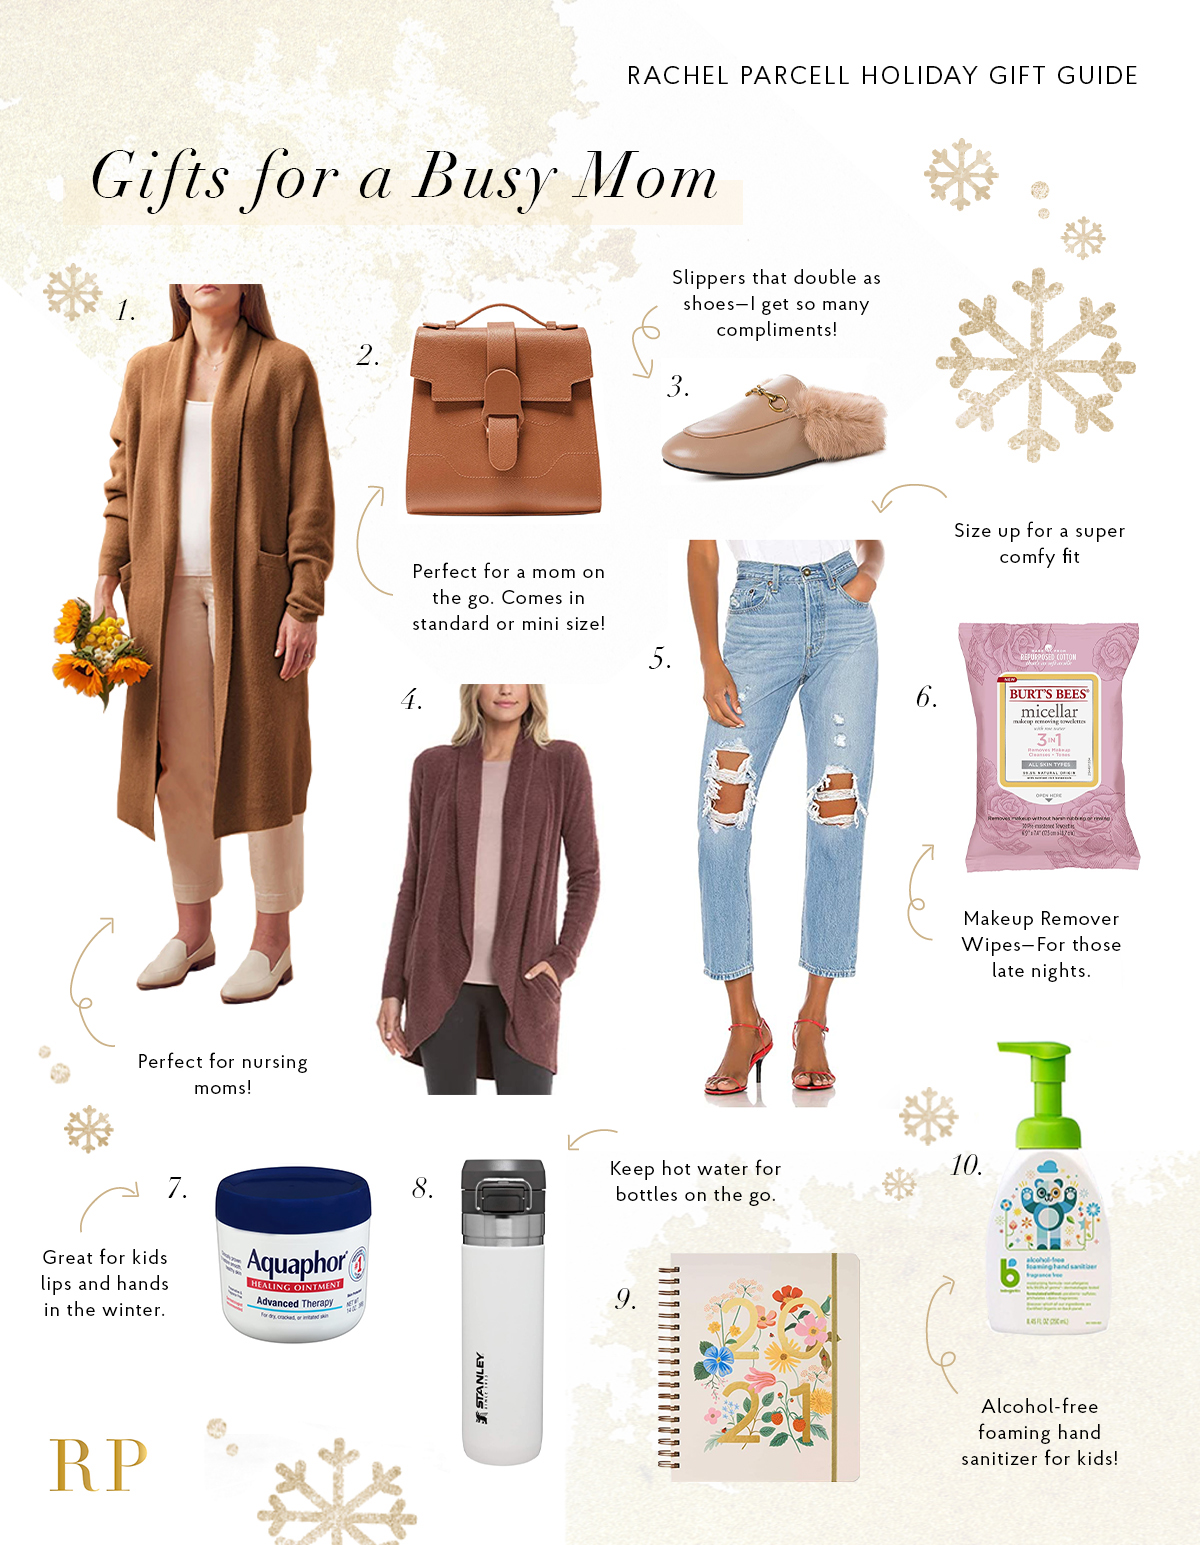 Gift Ideas for a Busy Mom... - Rach Parcell